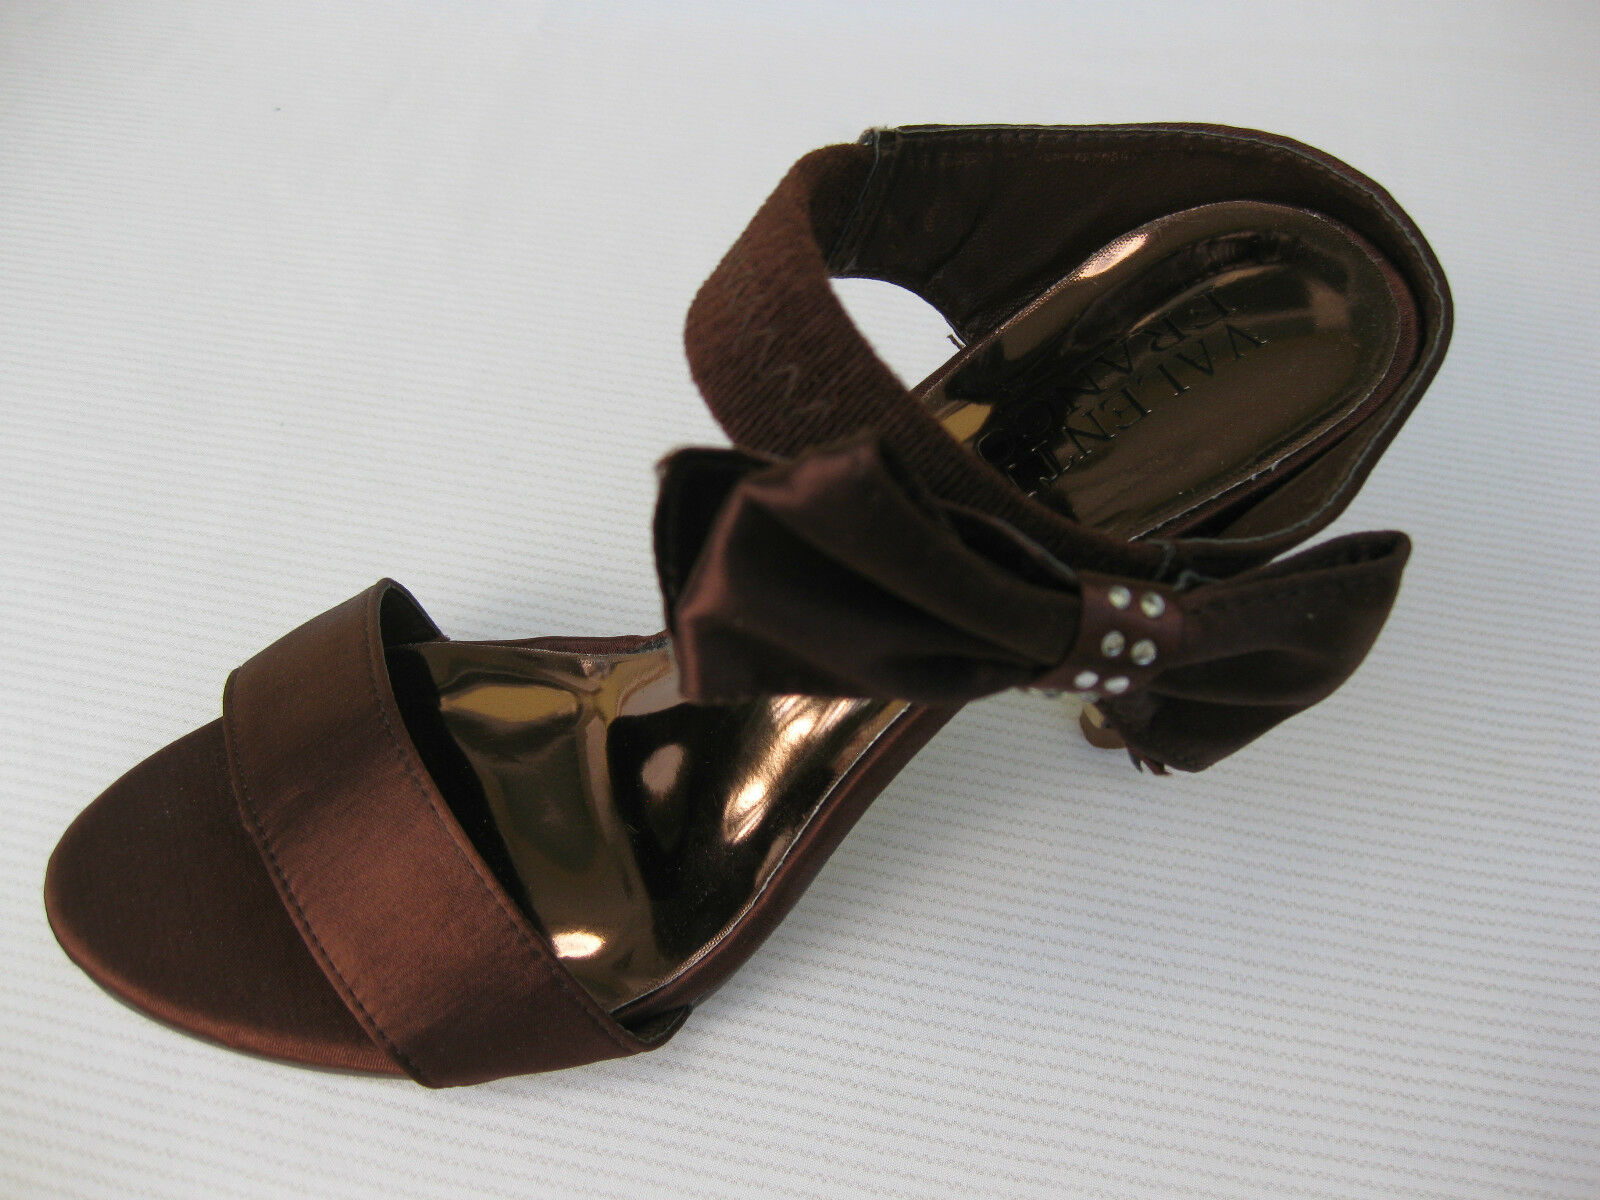 Valenti Franco Satin Womens Shoes $55 Plated Slide Bronze Satin Franco Evening 9 M 1d3ec3